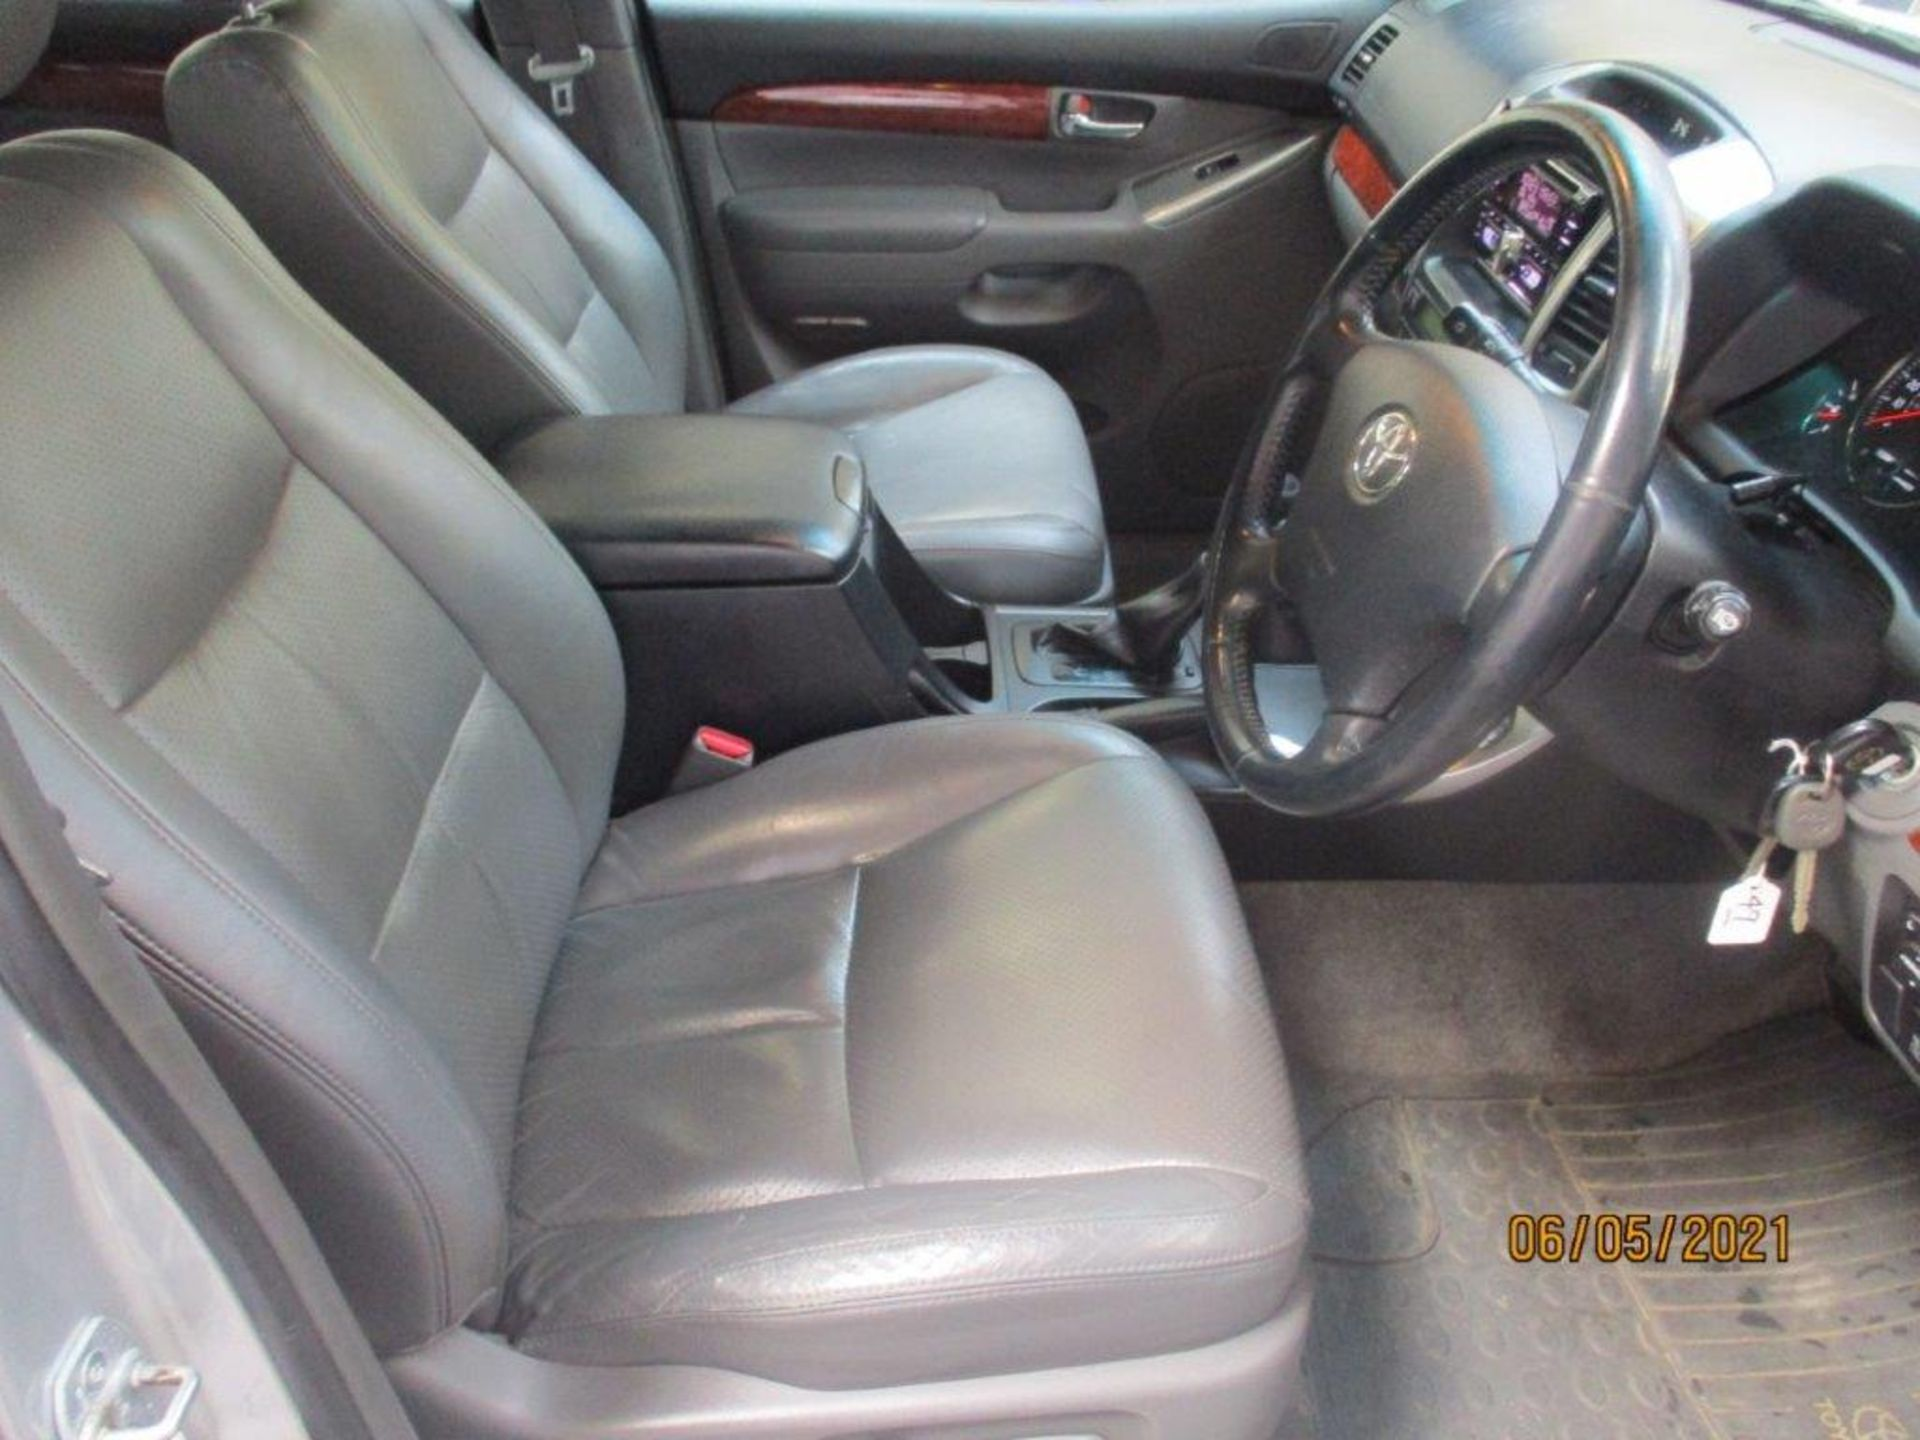 07 57 Toyota L/Cruiser LC4 D 4D - Image 11 of 32